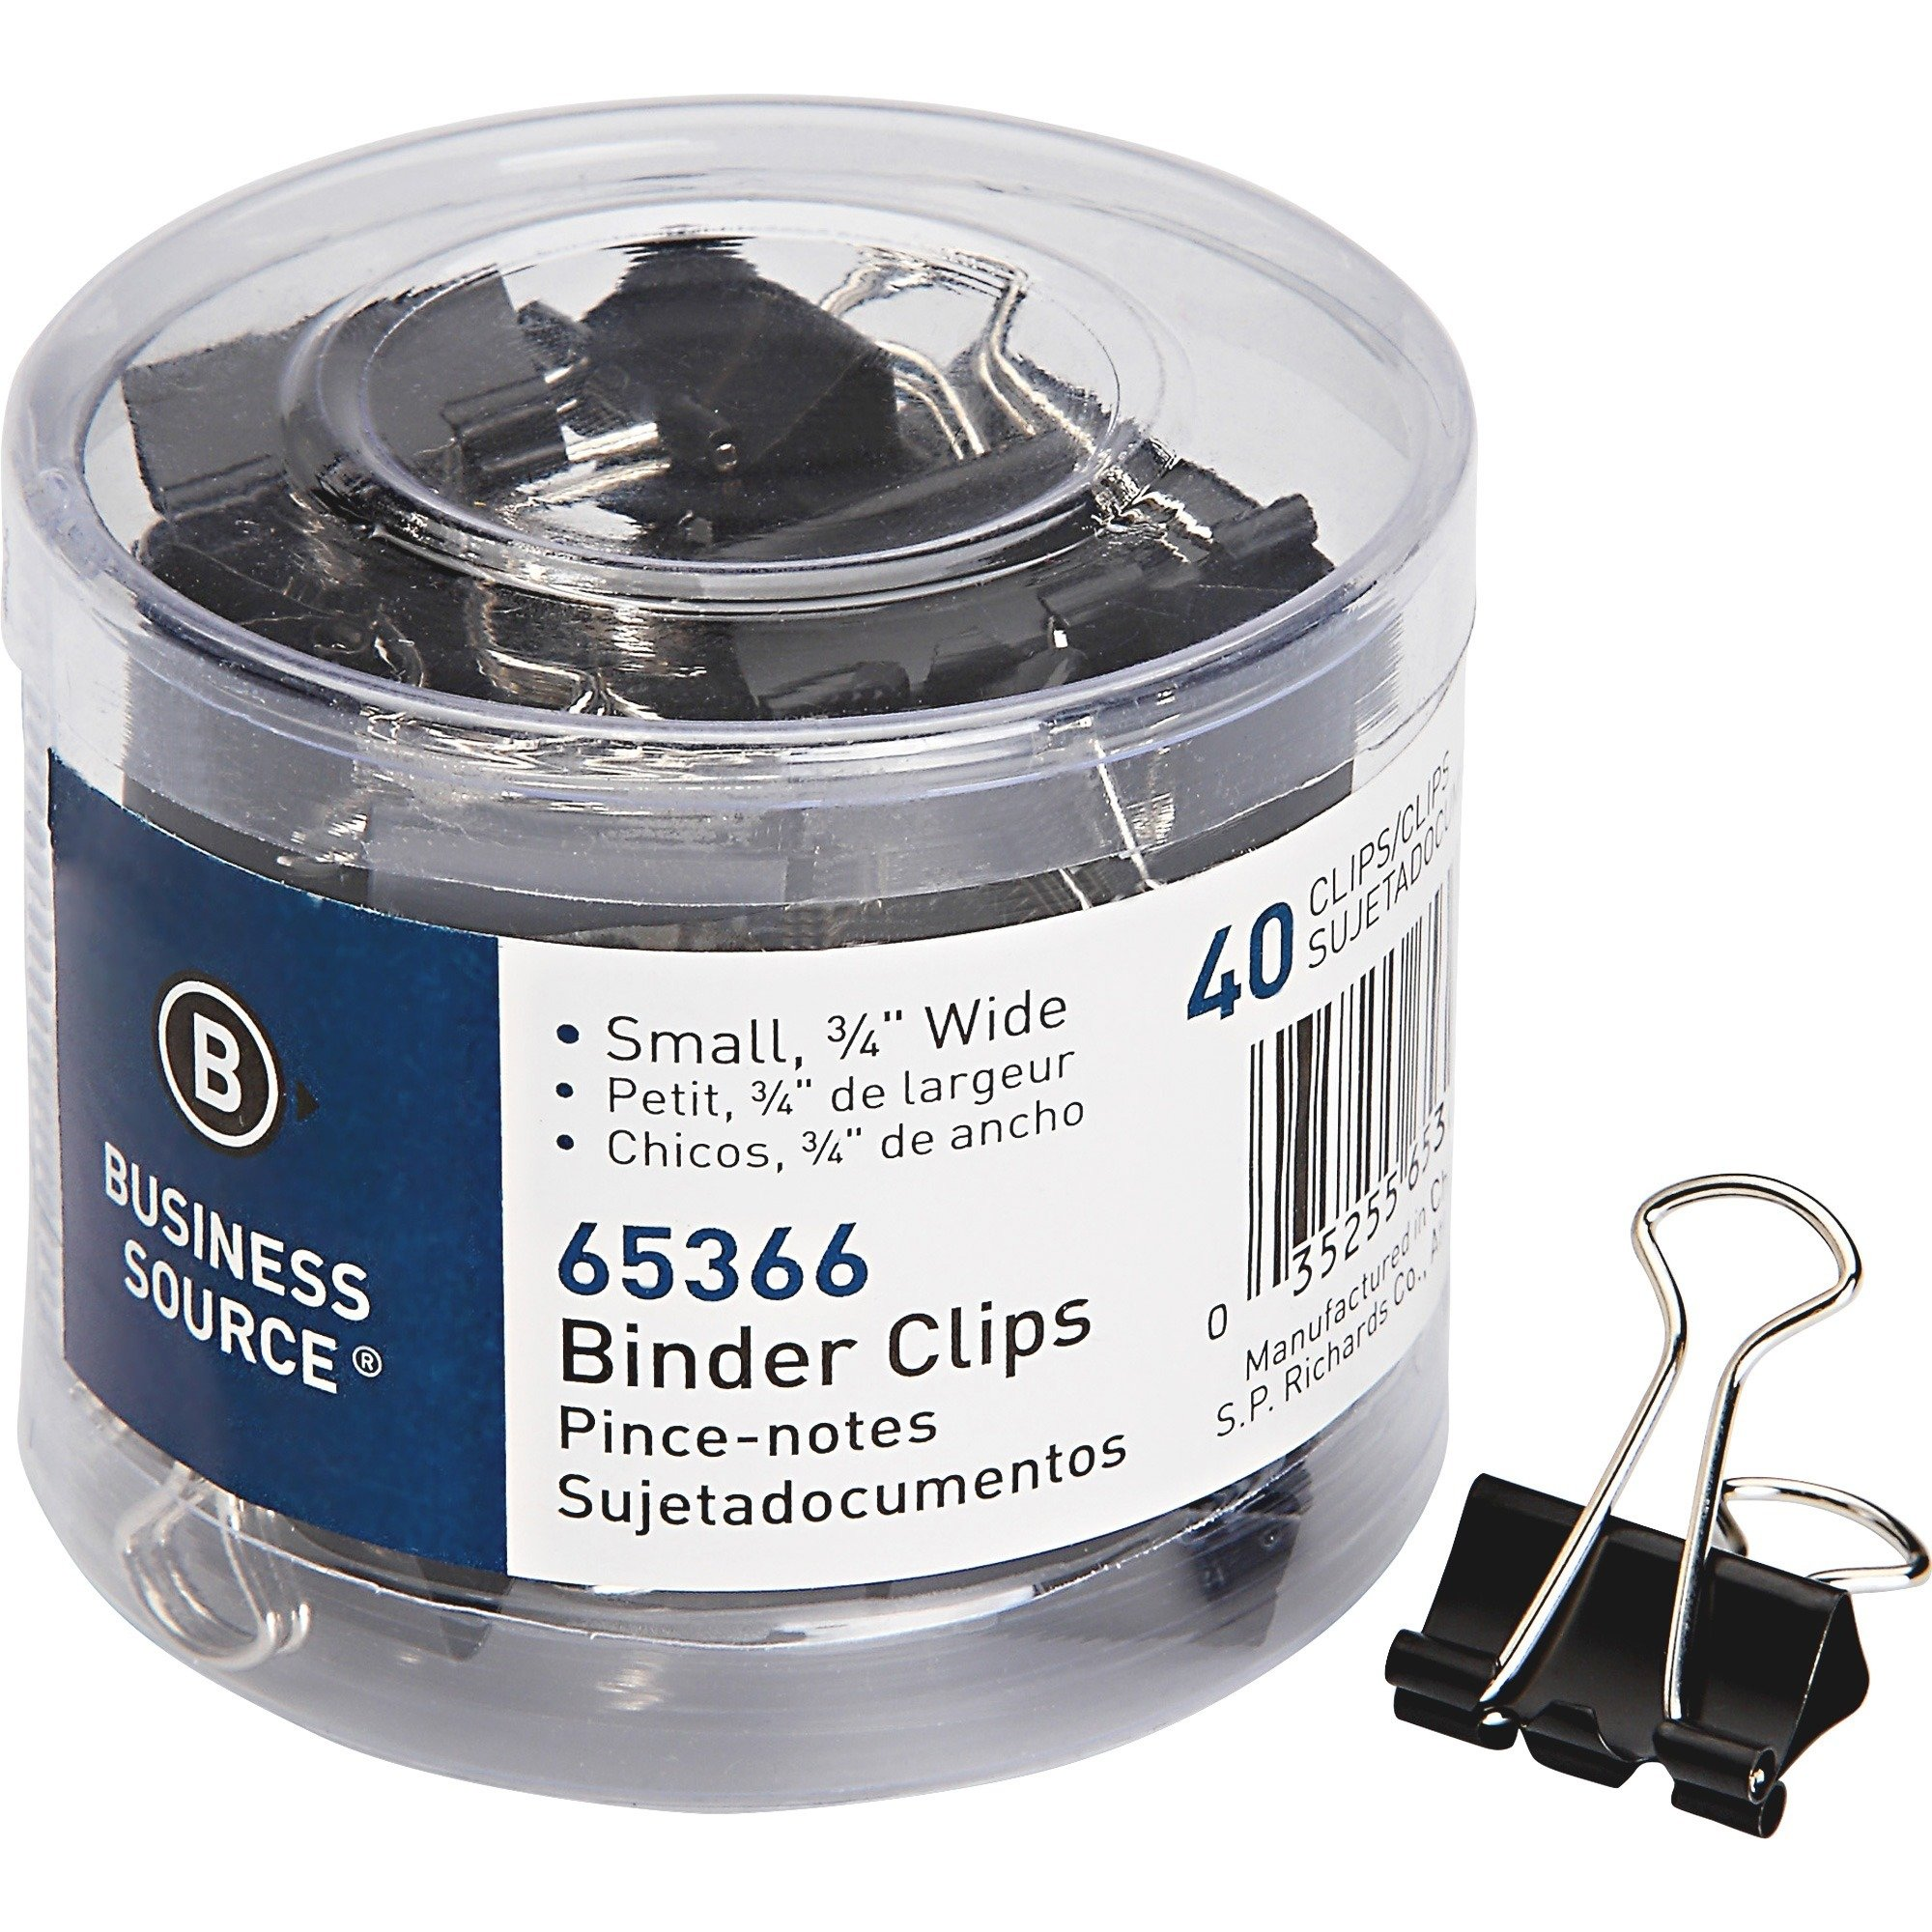 "Business Source Fold-back Binder Clips Small - 0.75"" - Black colour - 40/box"